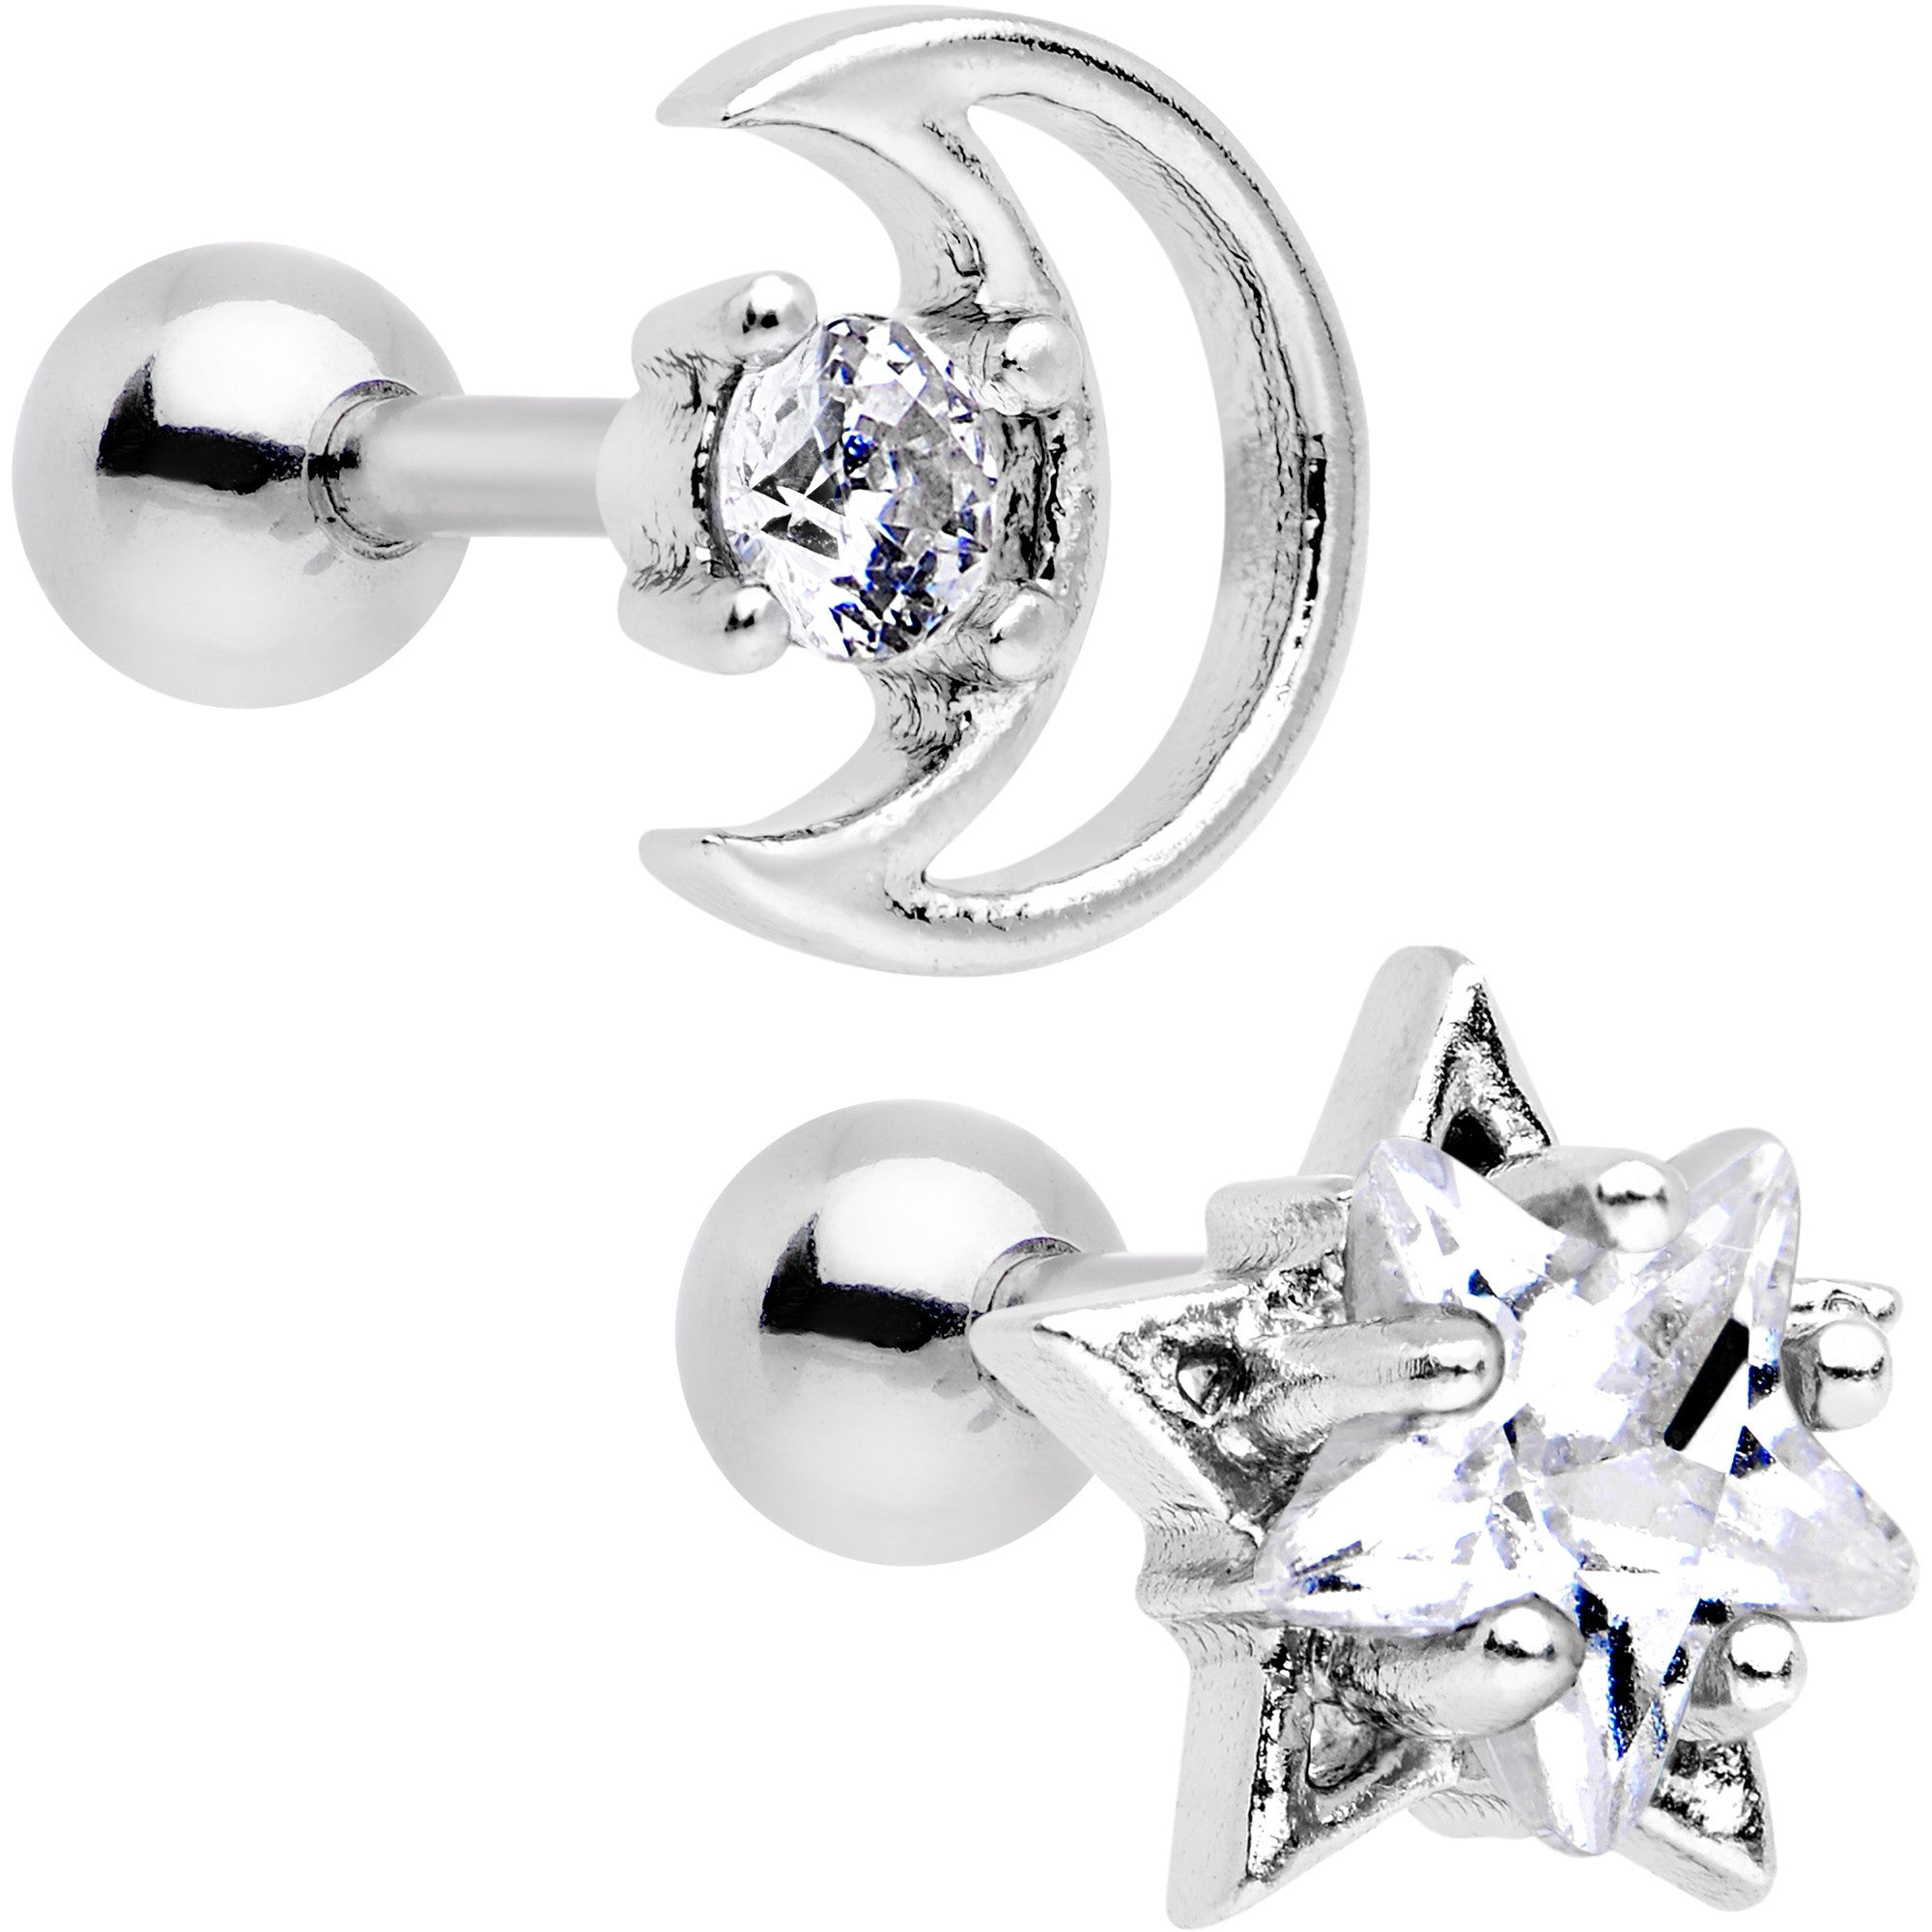 Earrings – BodyCandy